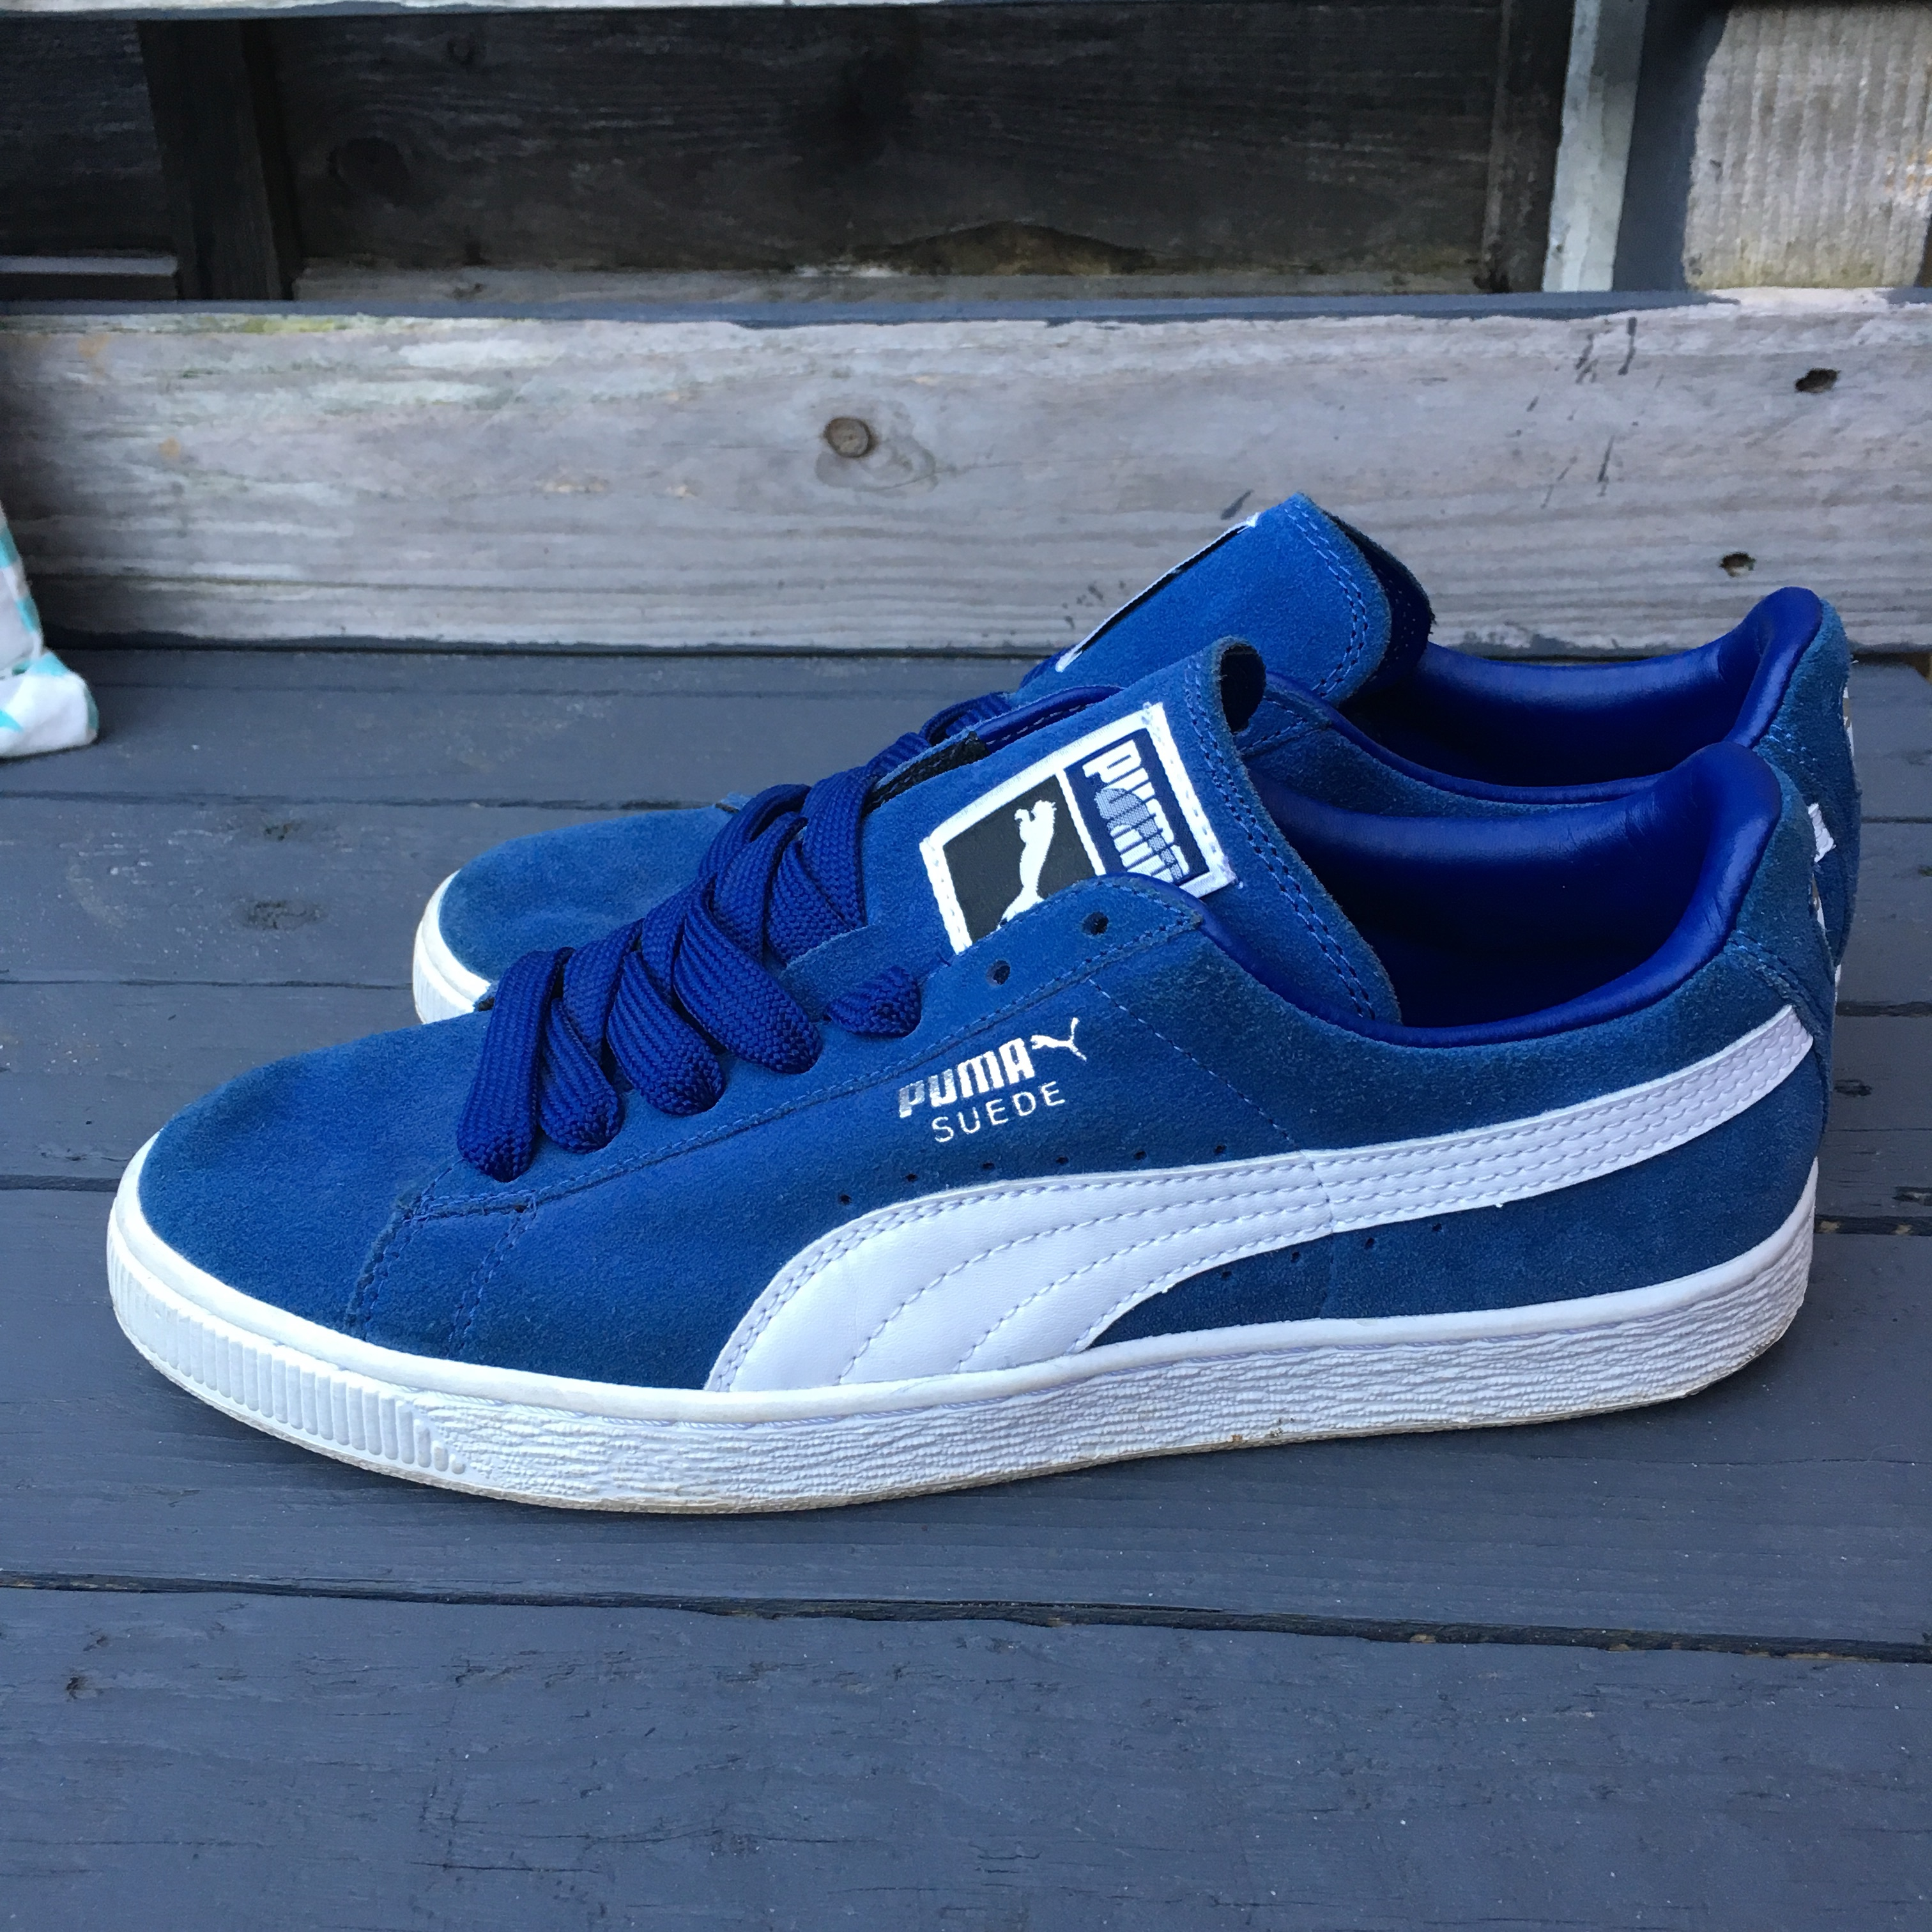 reputable site 5bf26 d2e93 Authentic royal blue puma suedes UK adult size... - Depop